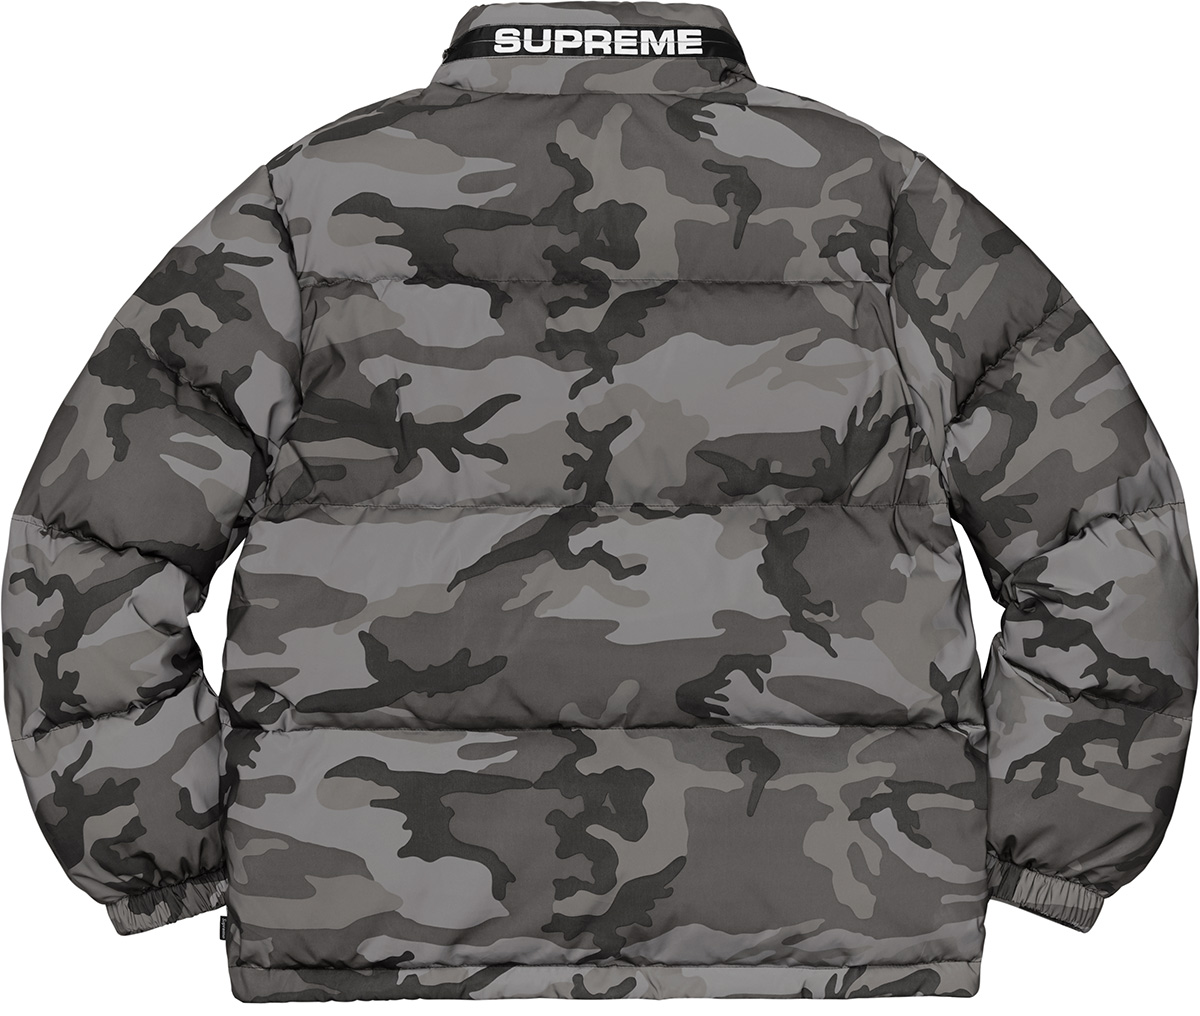 supreme-18aw-fall-winter-reflective-camo-down-jacket